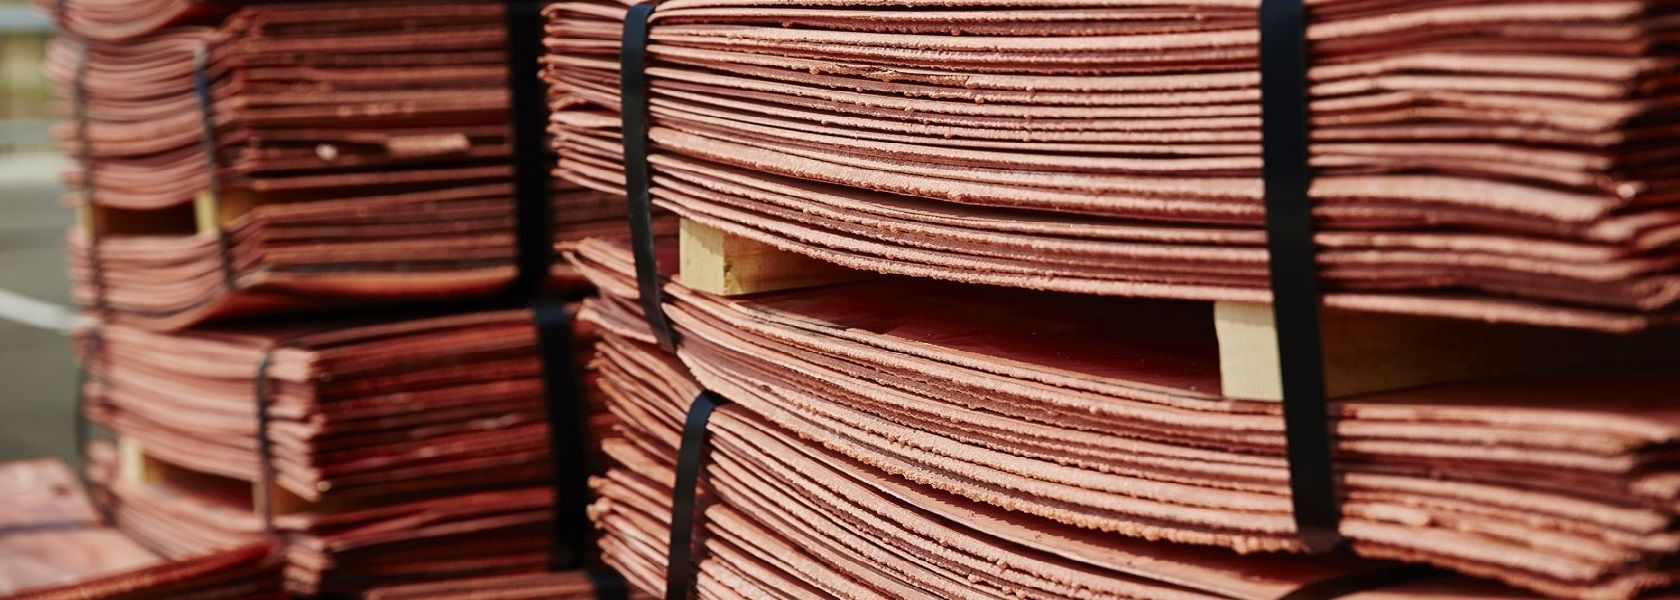 No wall of copper mine supply, bank says